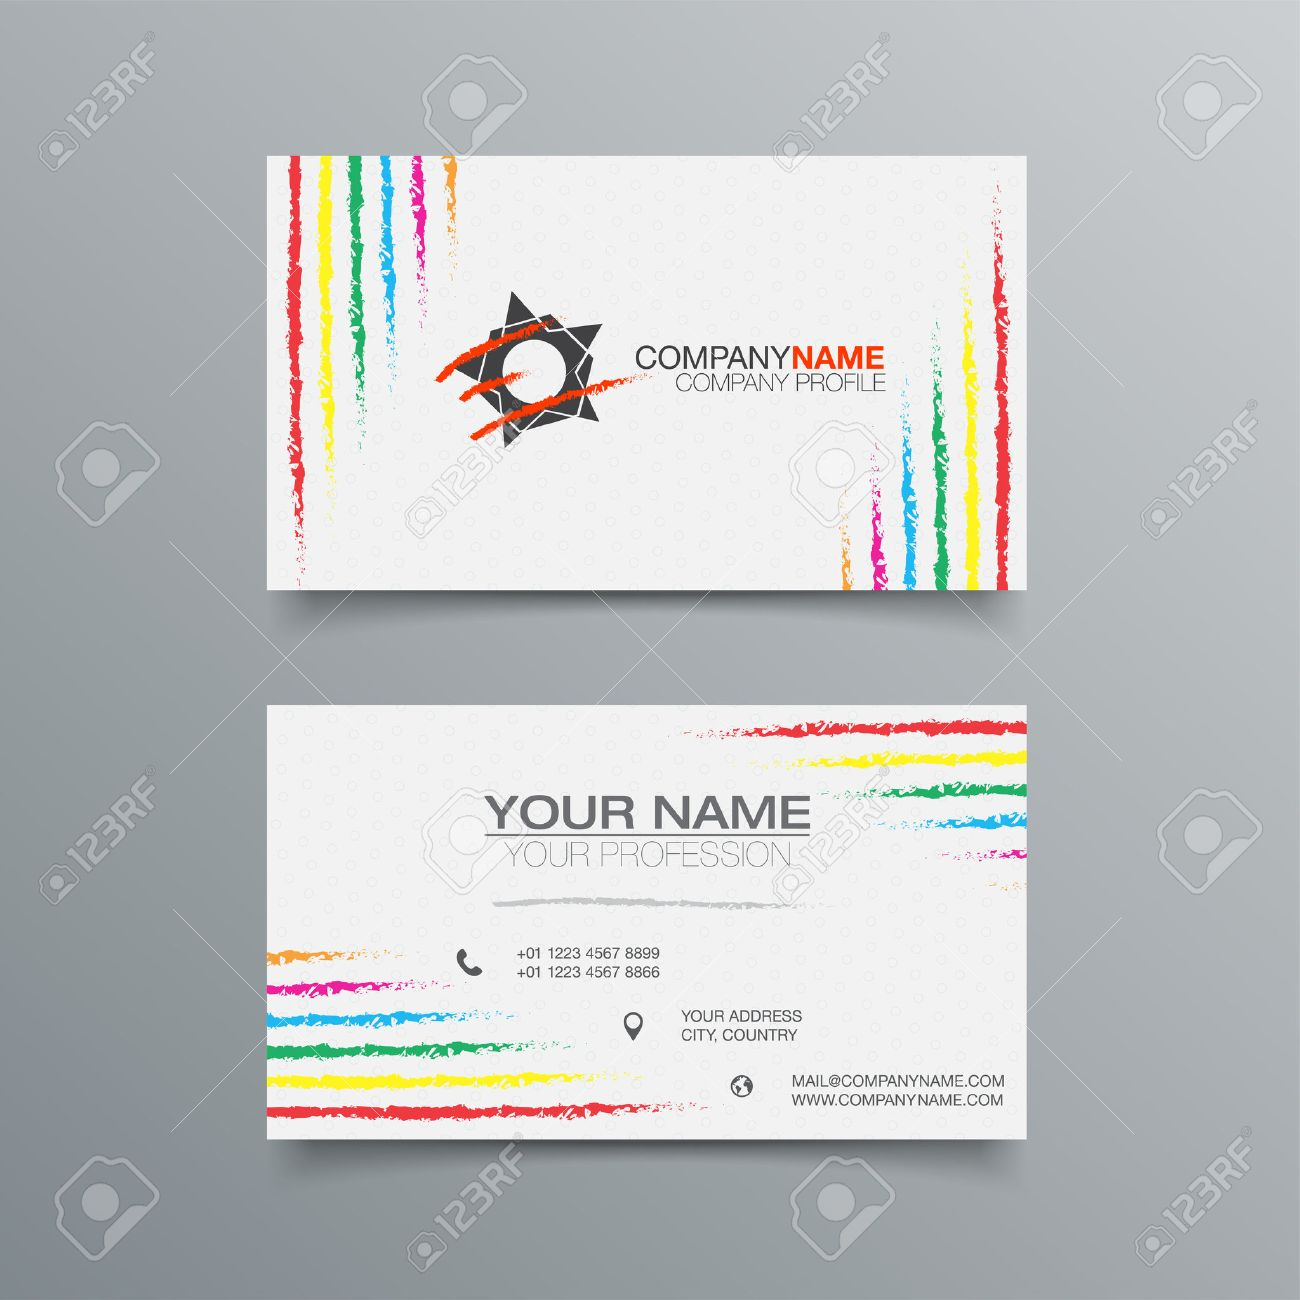 Business Card Background Design Template. Stock Vector Illustration ...